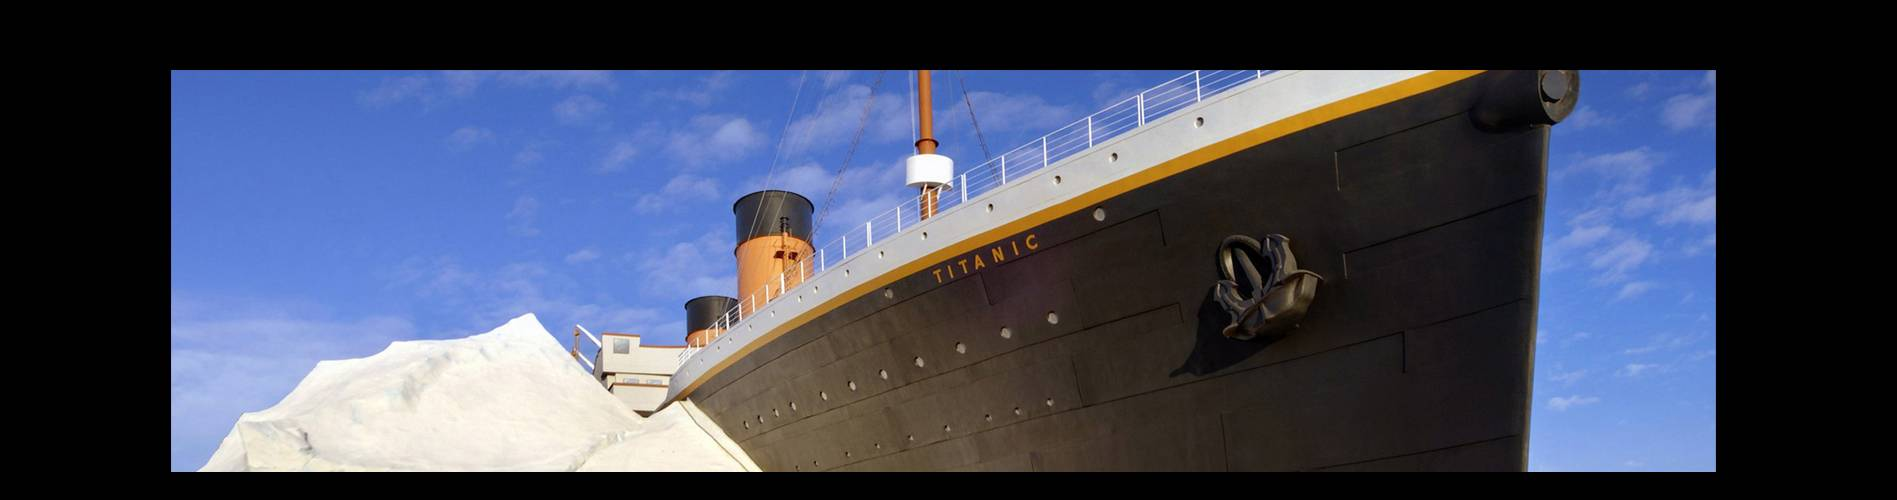 TITANIC Museum Attraction in Pigeon Forge